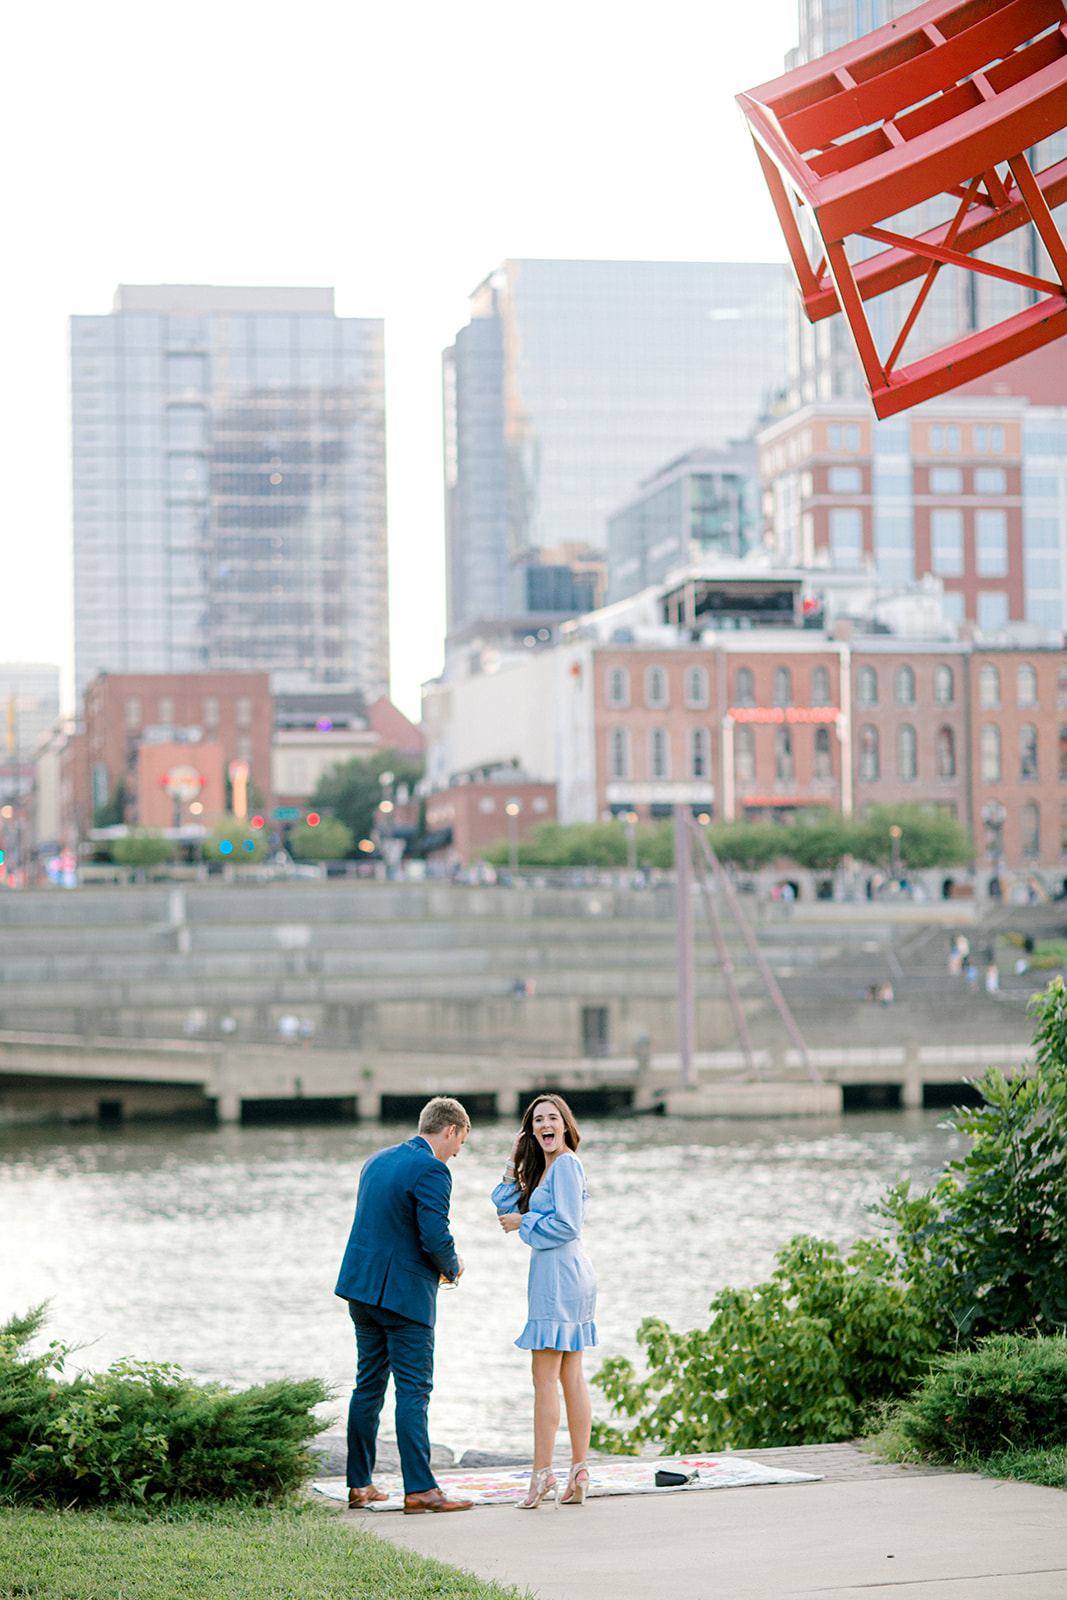 Surprise Downtown Nashville Proposal captured by Ashton Brooke Photography featured on Nashville Bride Guide